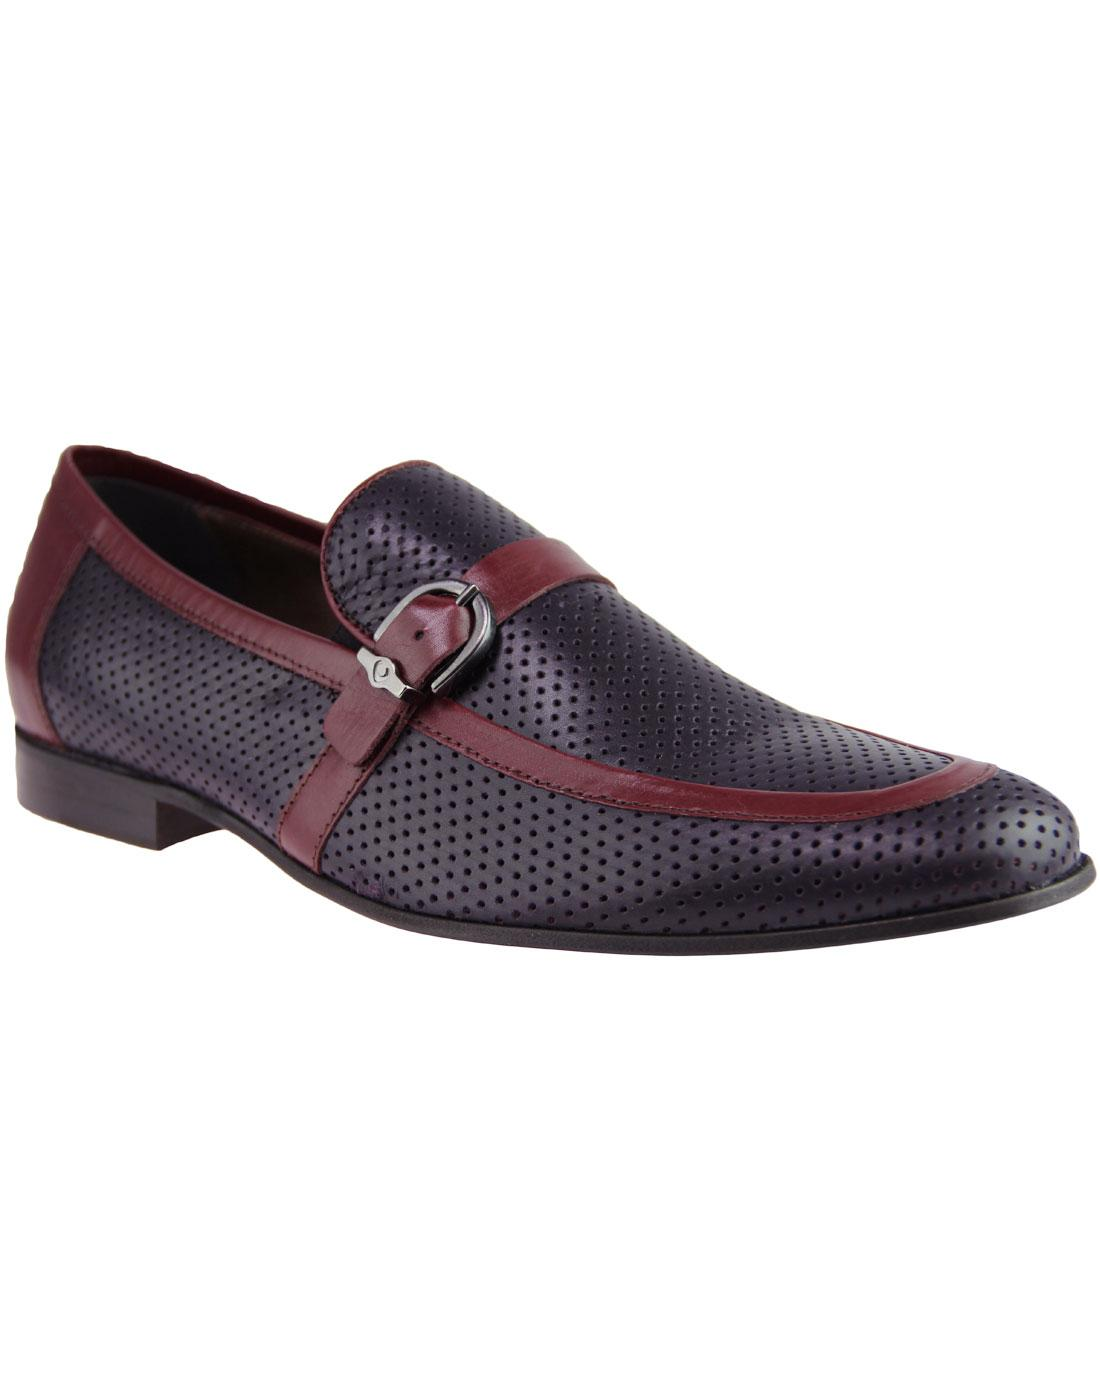 Lane LACUZZO 60s Mod Perf 2 Tone Loafers PURPLE